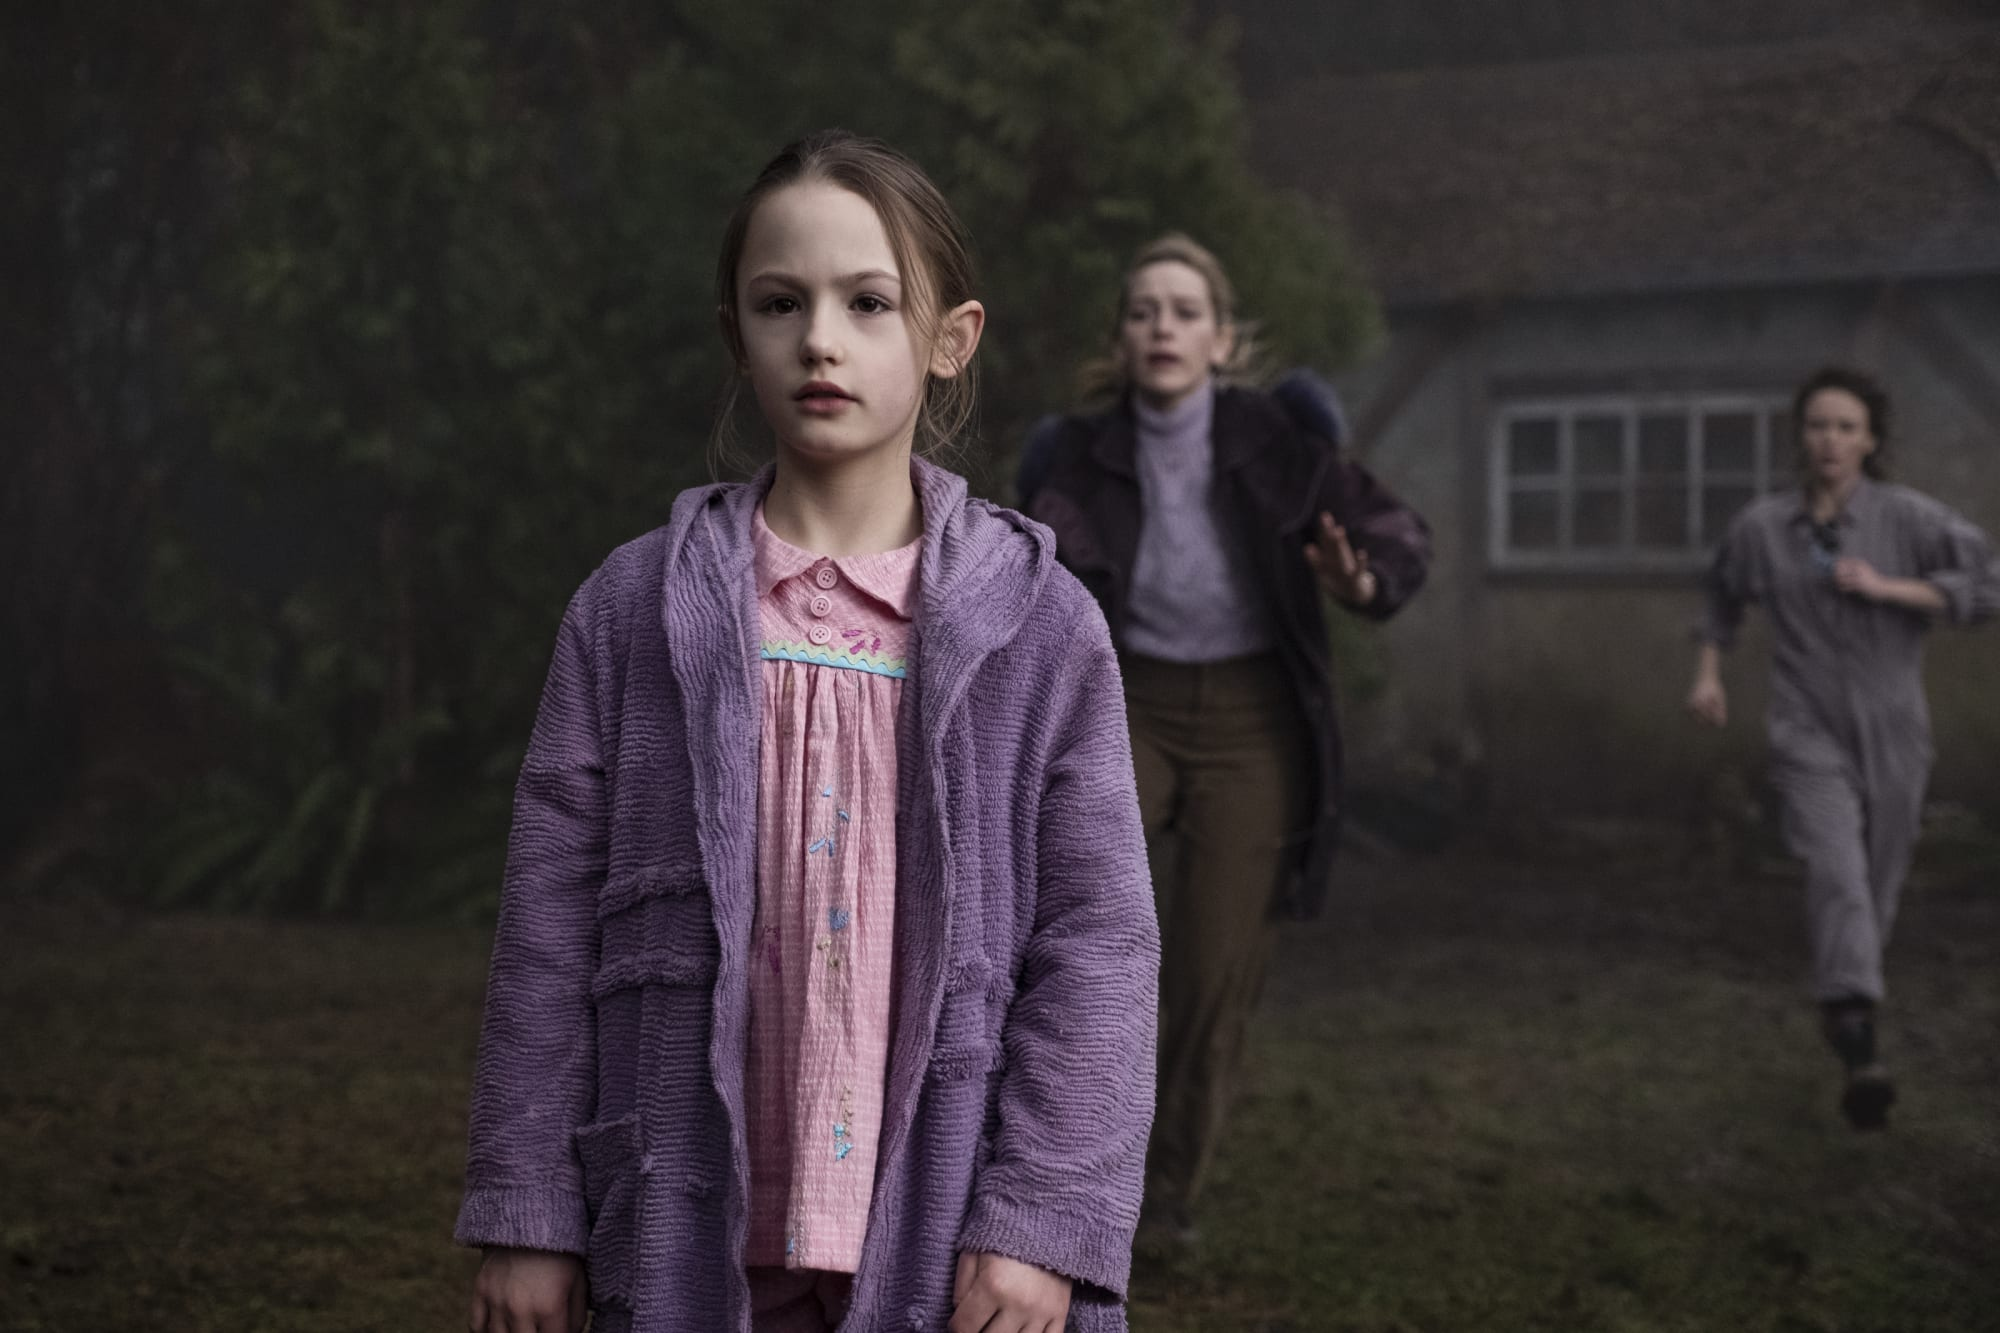 Best Halloween movies and shows on Netflix in 2021